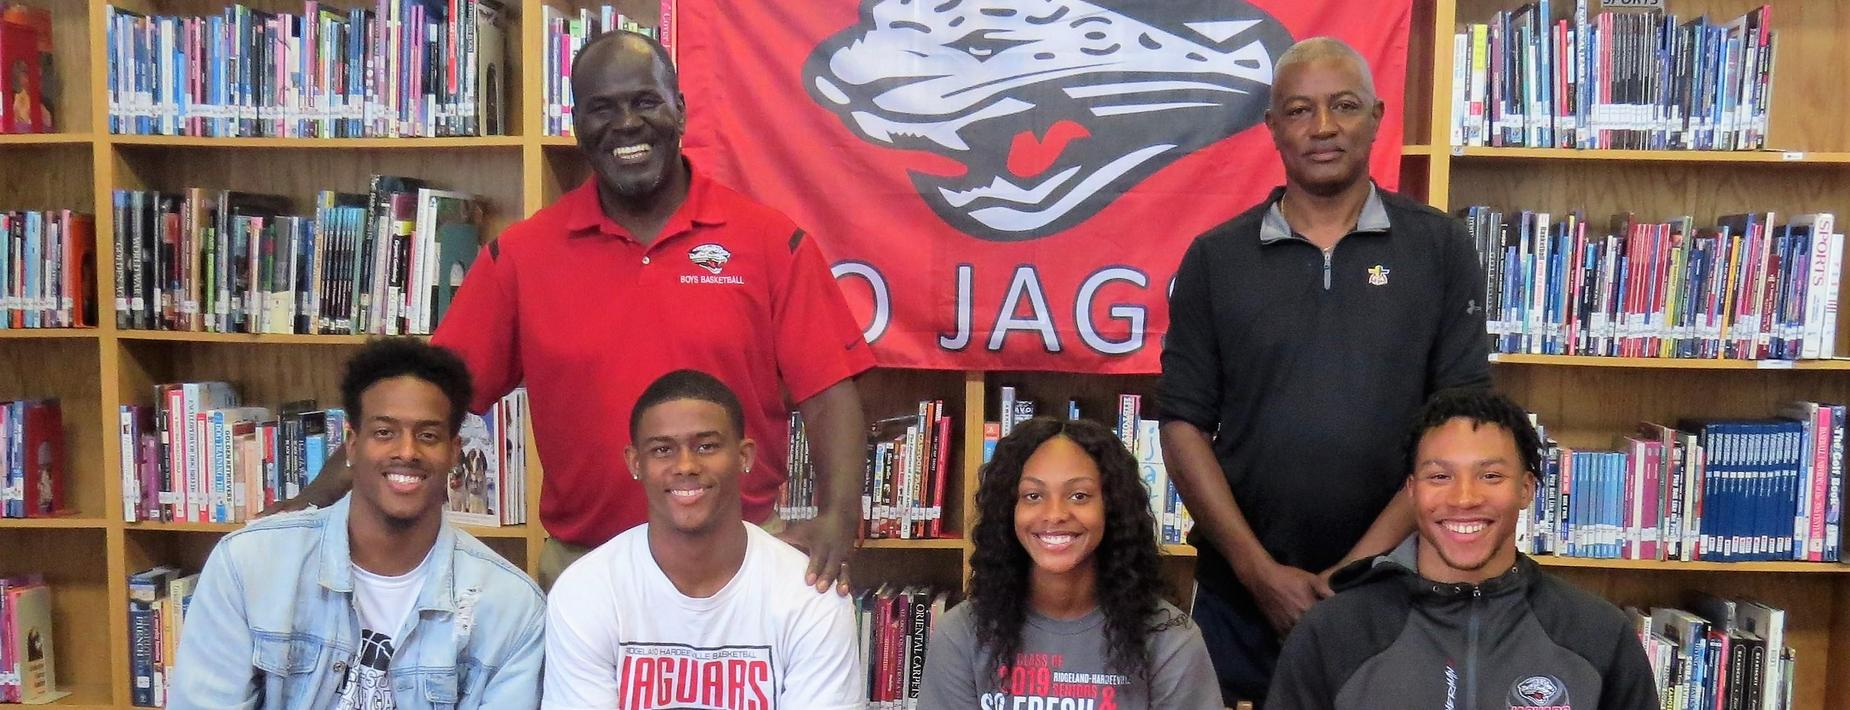 Ridgeland-Hardeeville athletes sign to compete in college